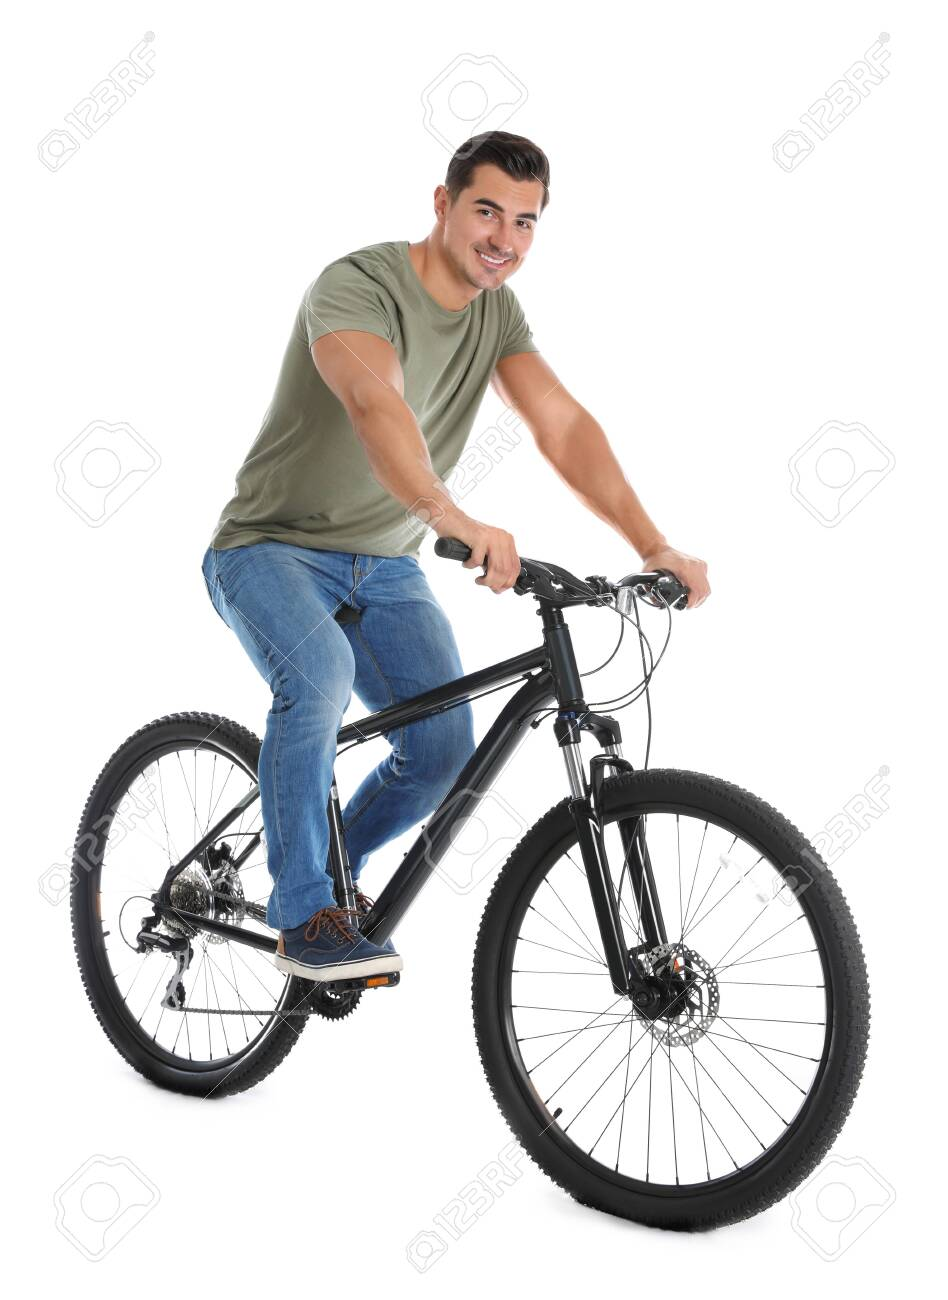 Handsome young man with modern bicycle on white background - 129915076